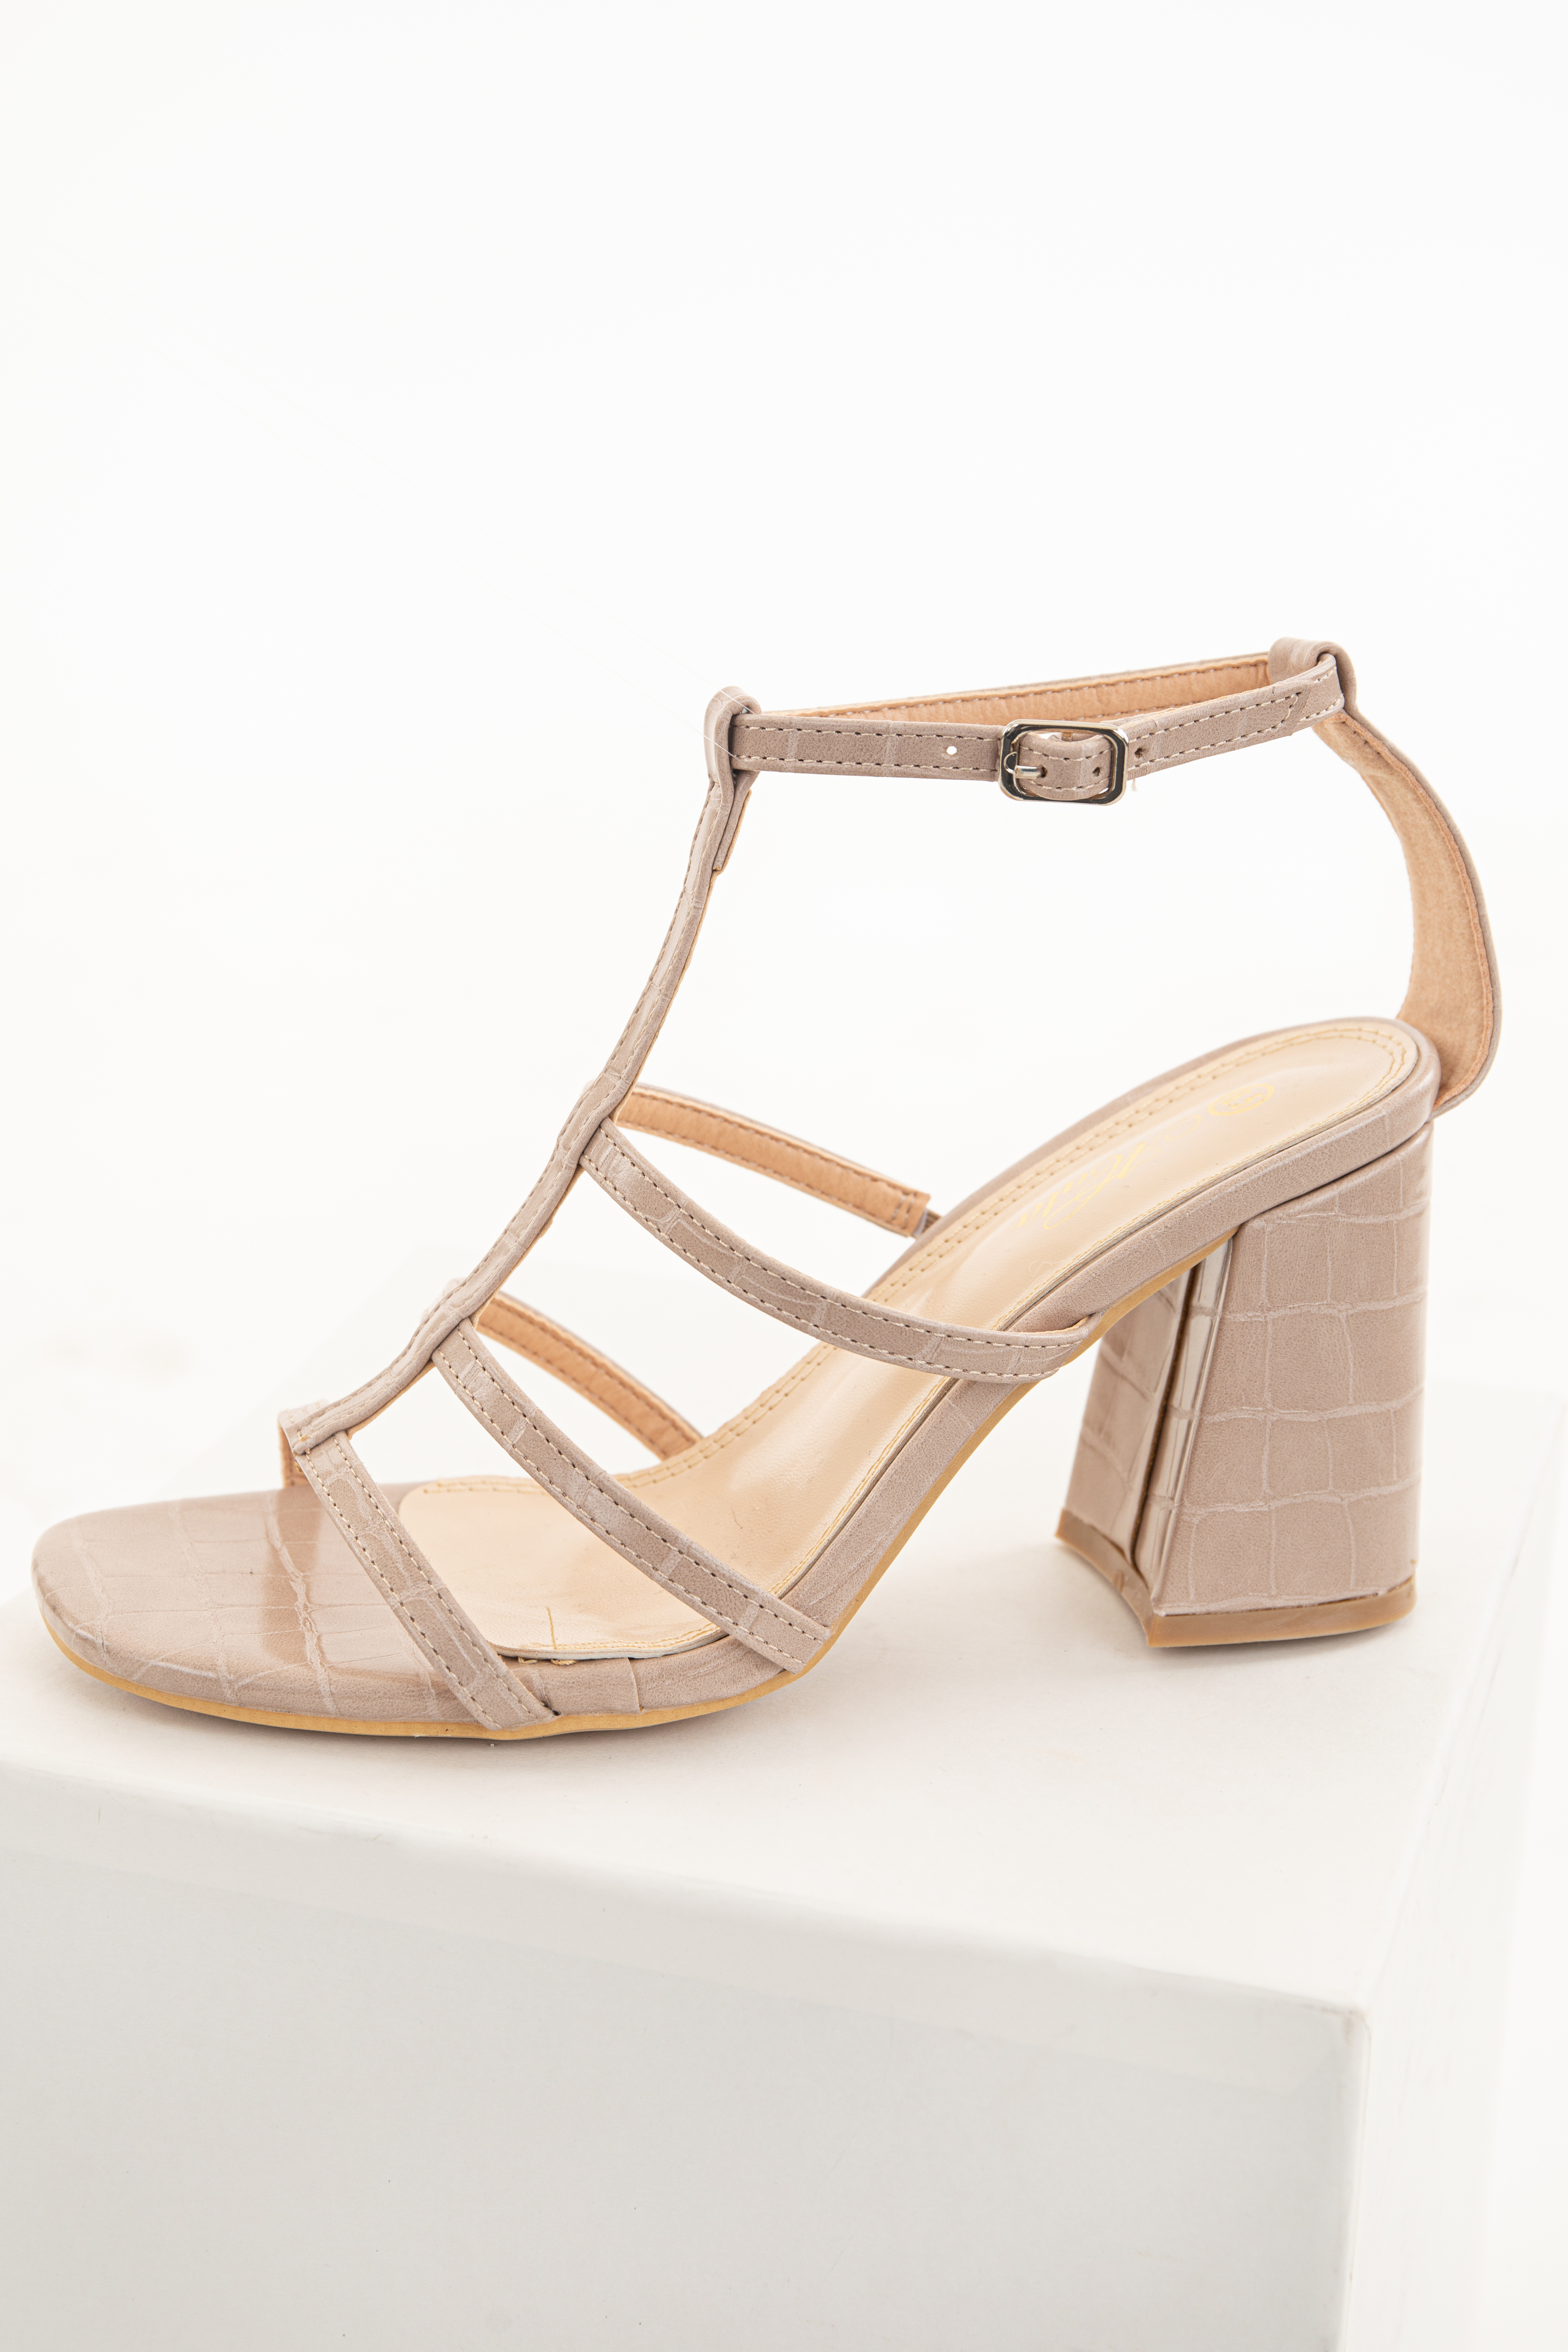 Nude Textured Faux Leather Heels with Open Toe and Straps